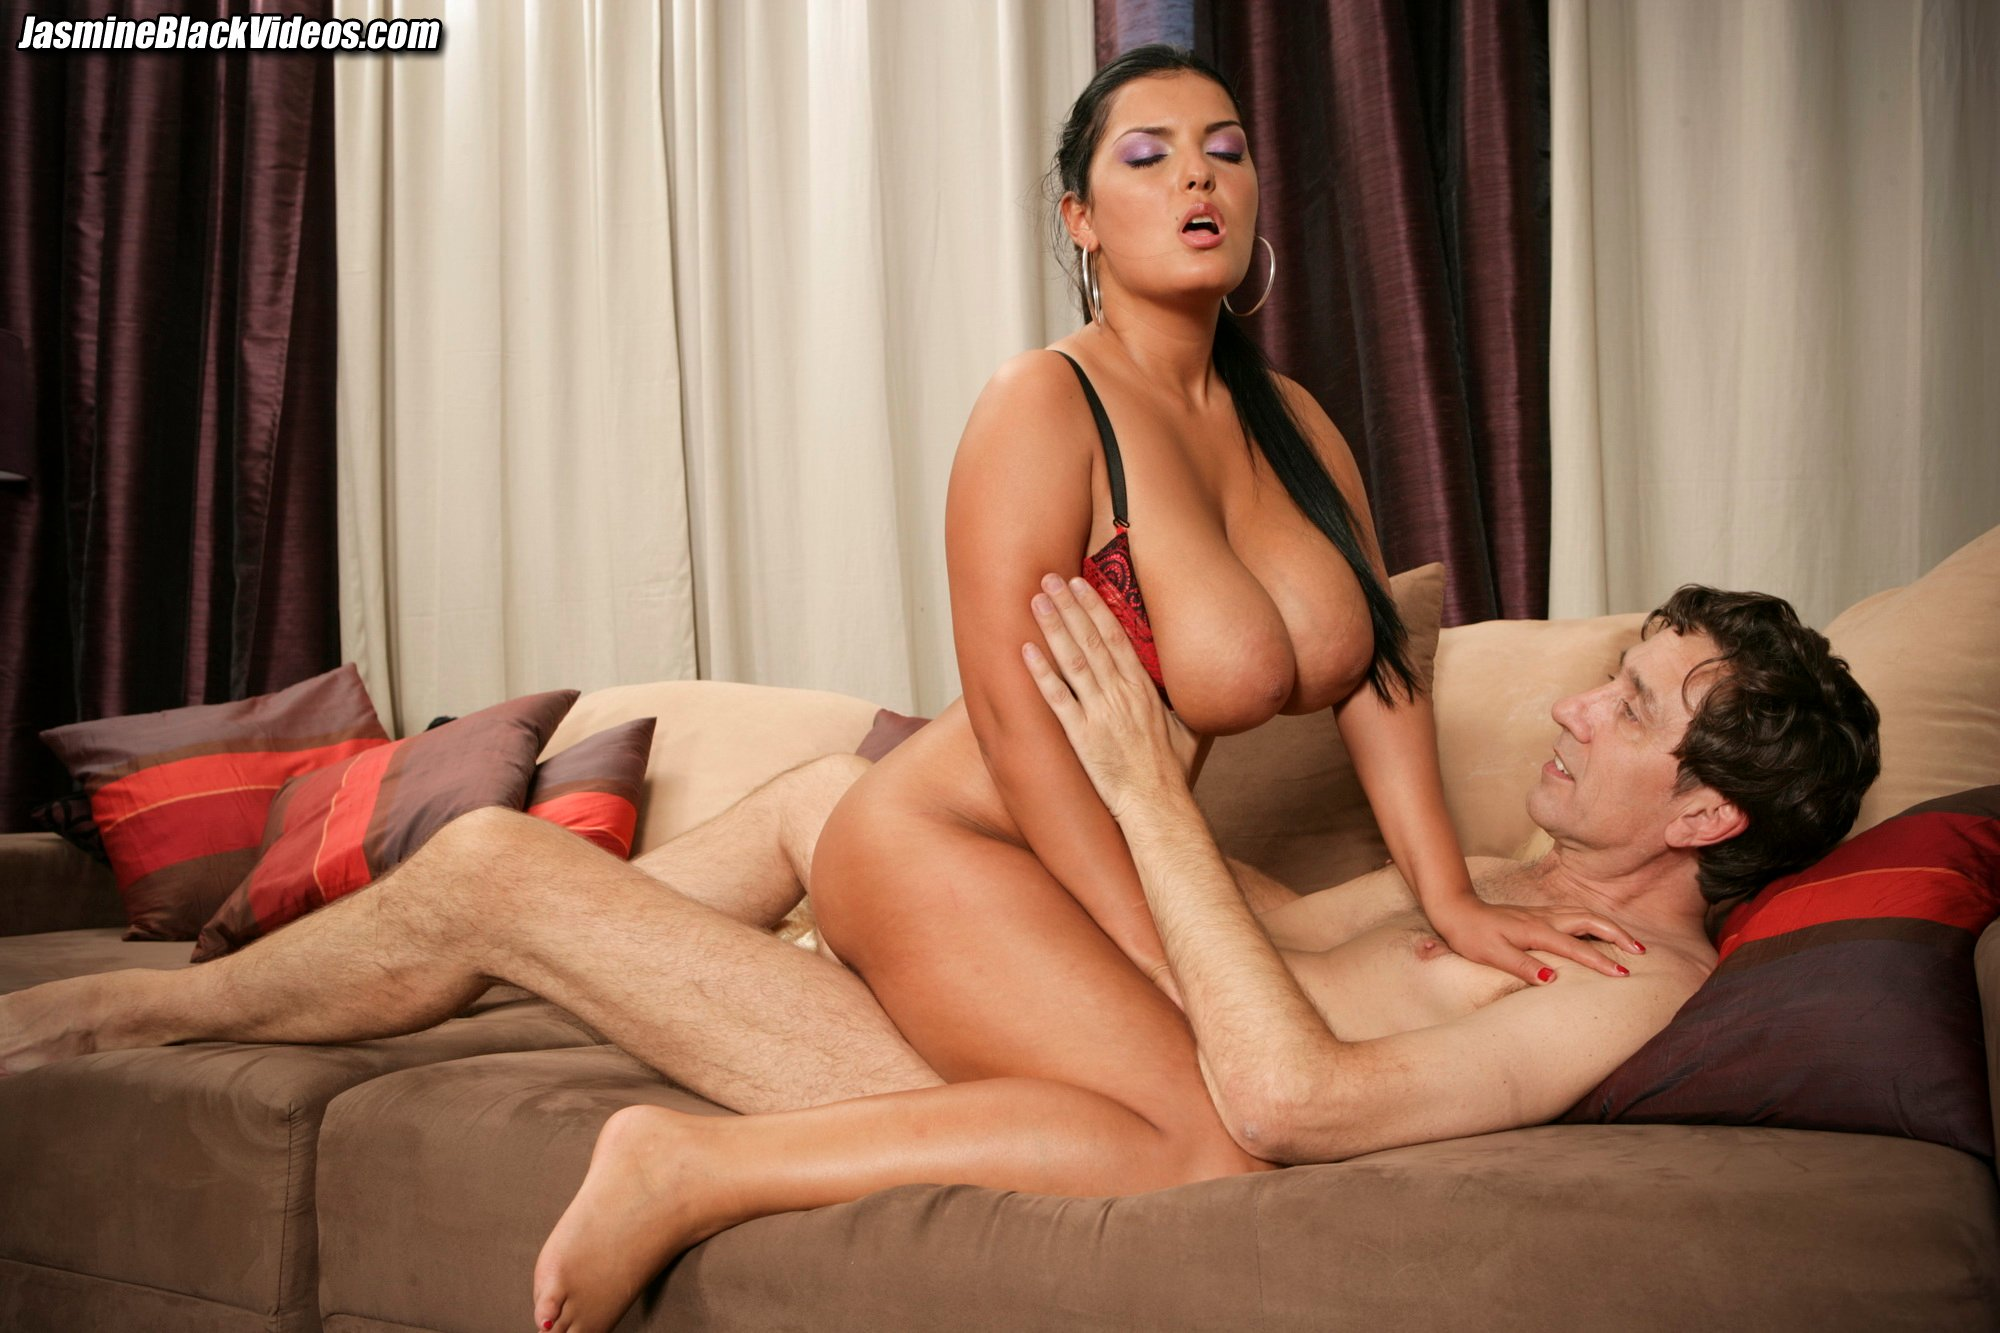 Jasmine Black Takes Steve Holmes 10 Inch Dick Up Her Ass -5580